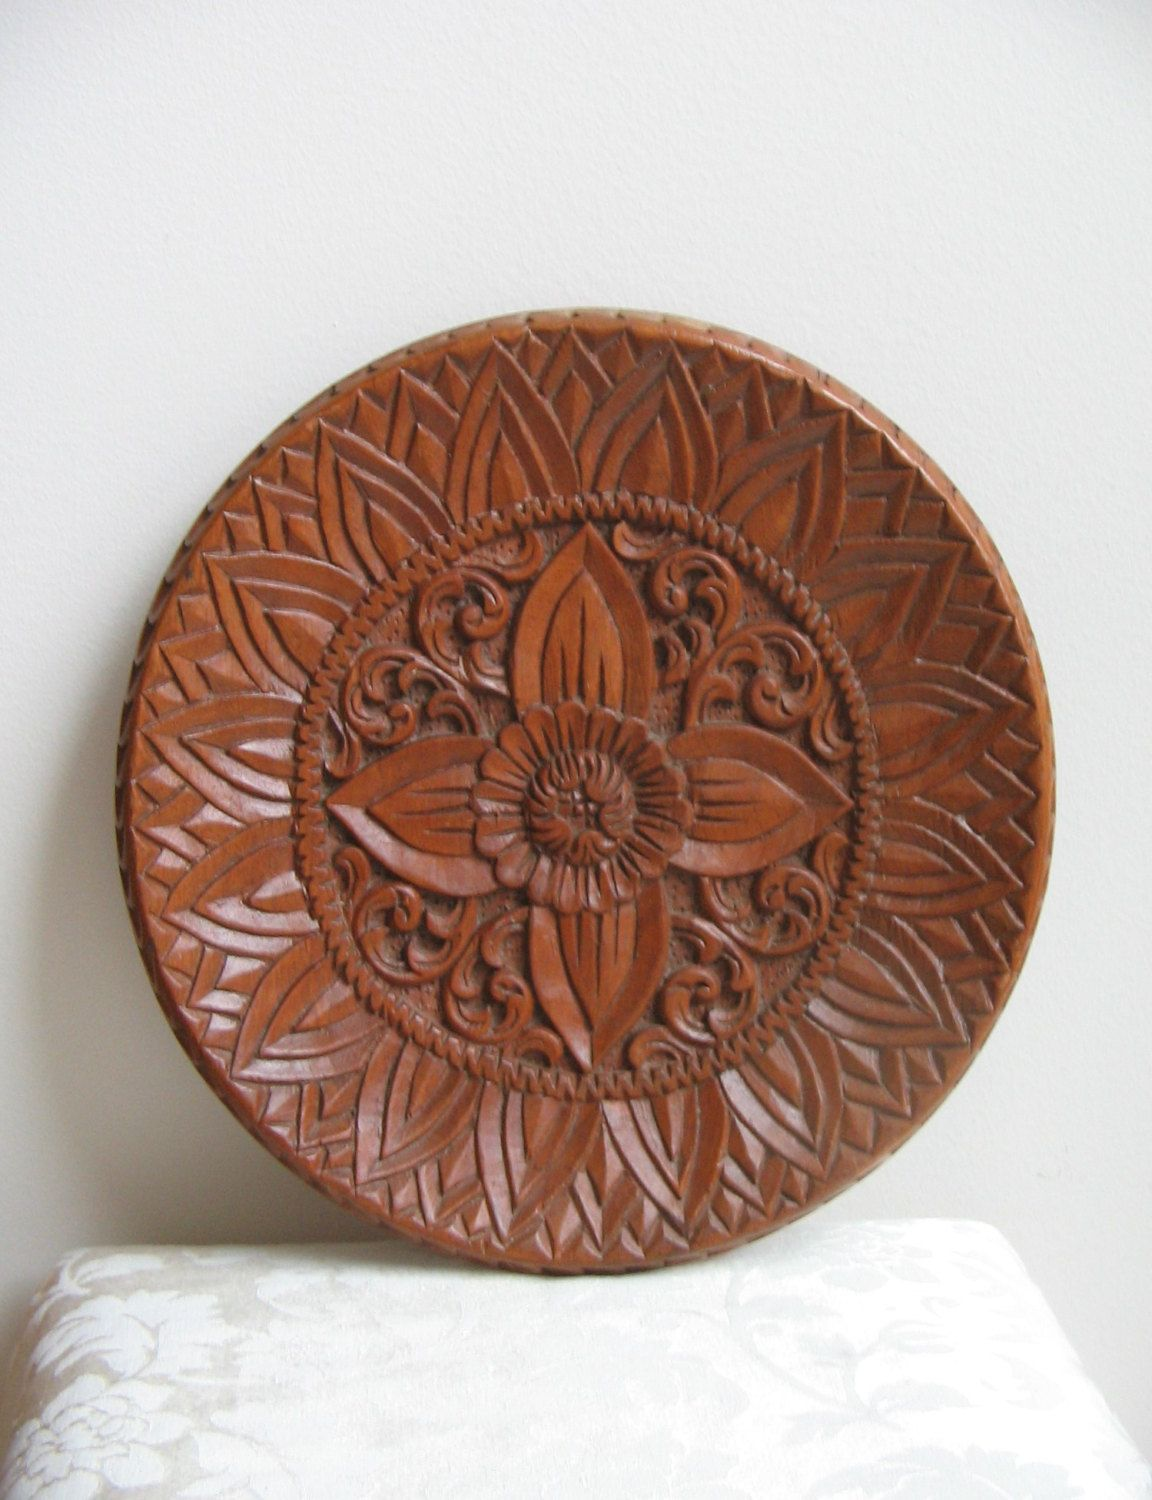 Carved Wood Wall Art Decor Prepossessing Vintage Carved Wood Wall Art Large Round Plate Possibly From Decorating Design